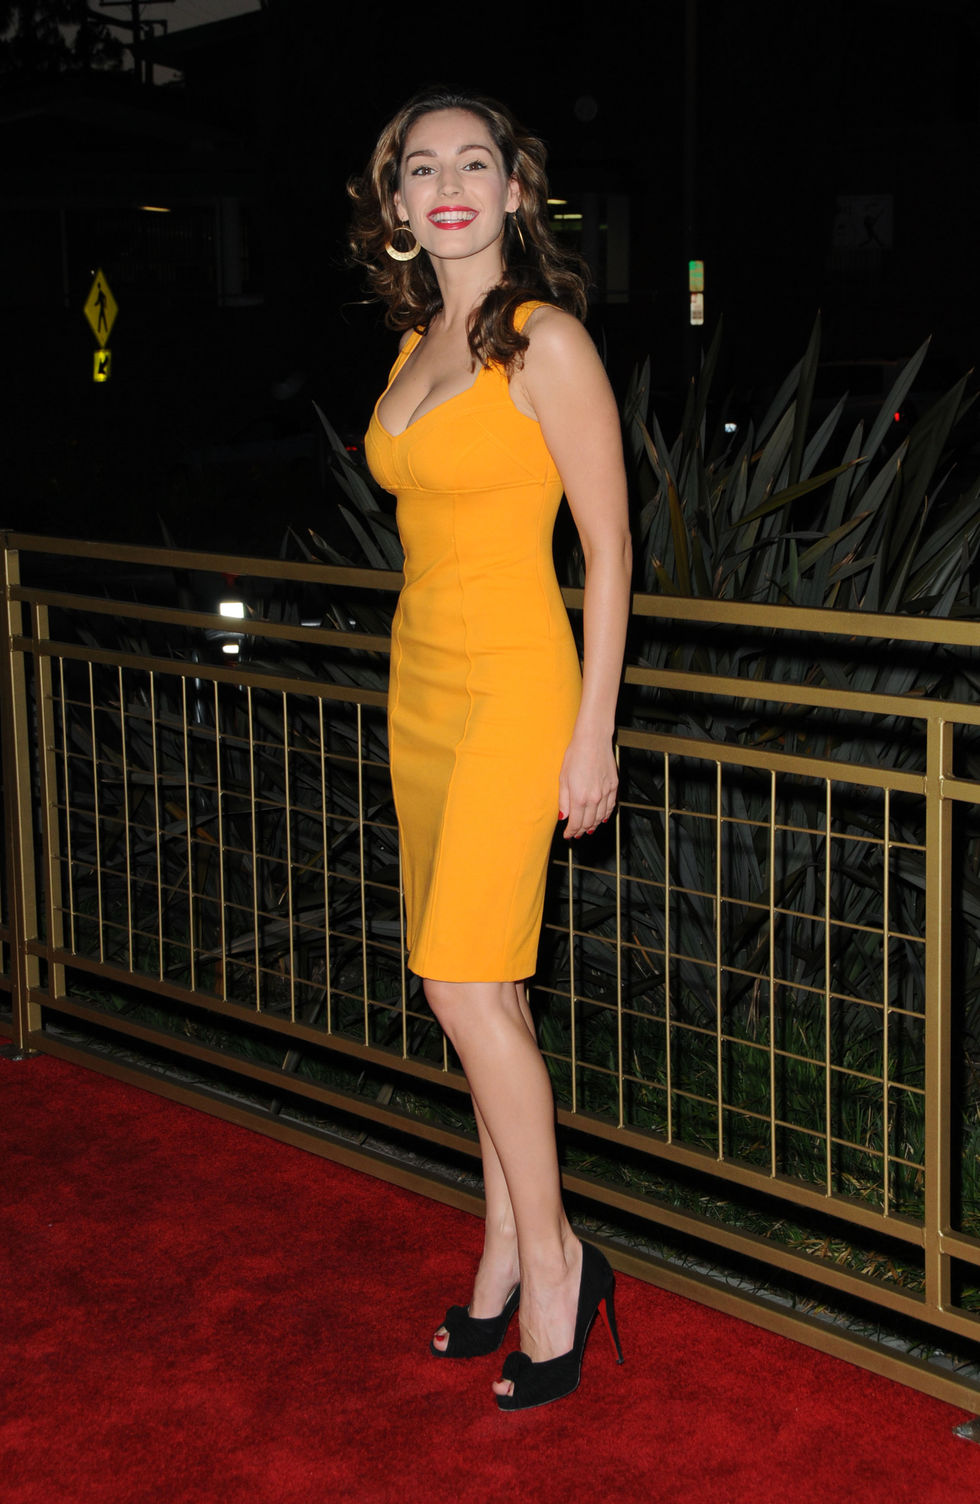 kelly-brook-at-lg-electronics-launch-of-scarlet-hdtv-series-01